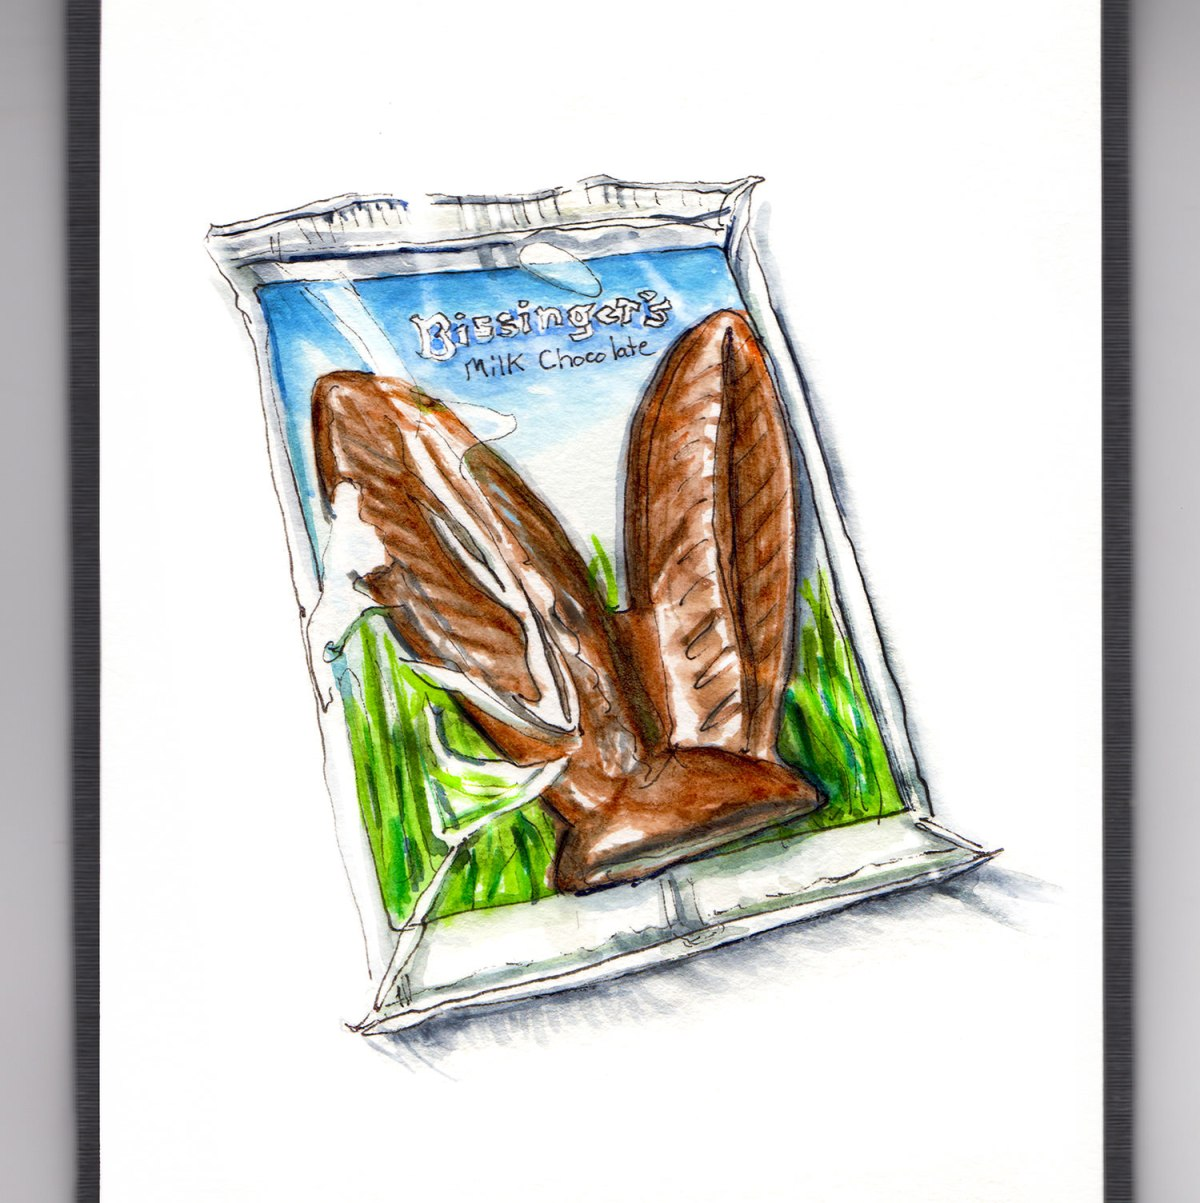 Day 16 - #WorldWatercolorGroup - Easter Bunny Chocolate Ears In Package - #doodlewash